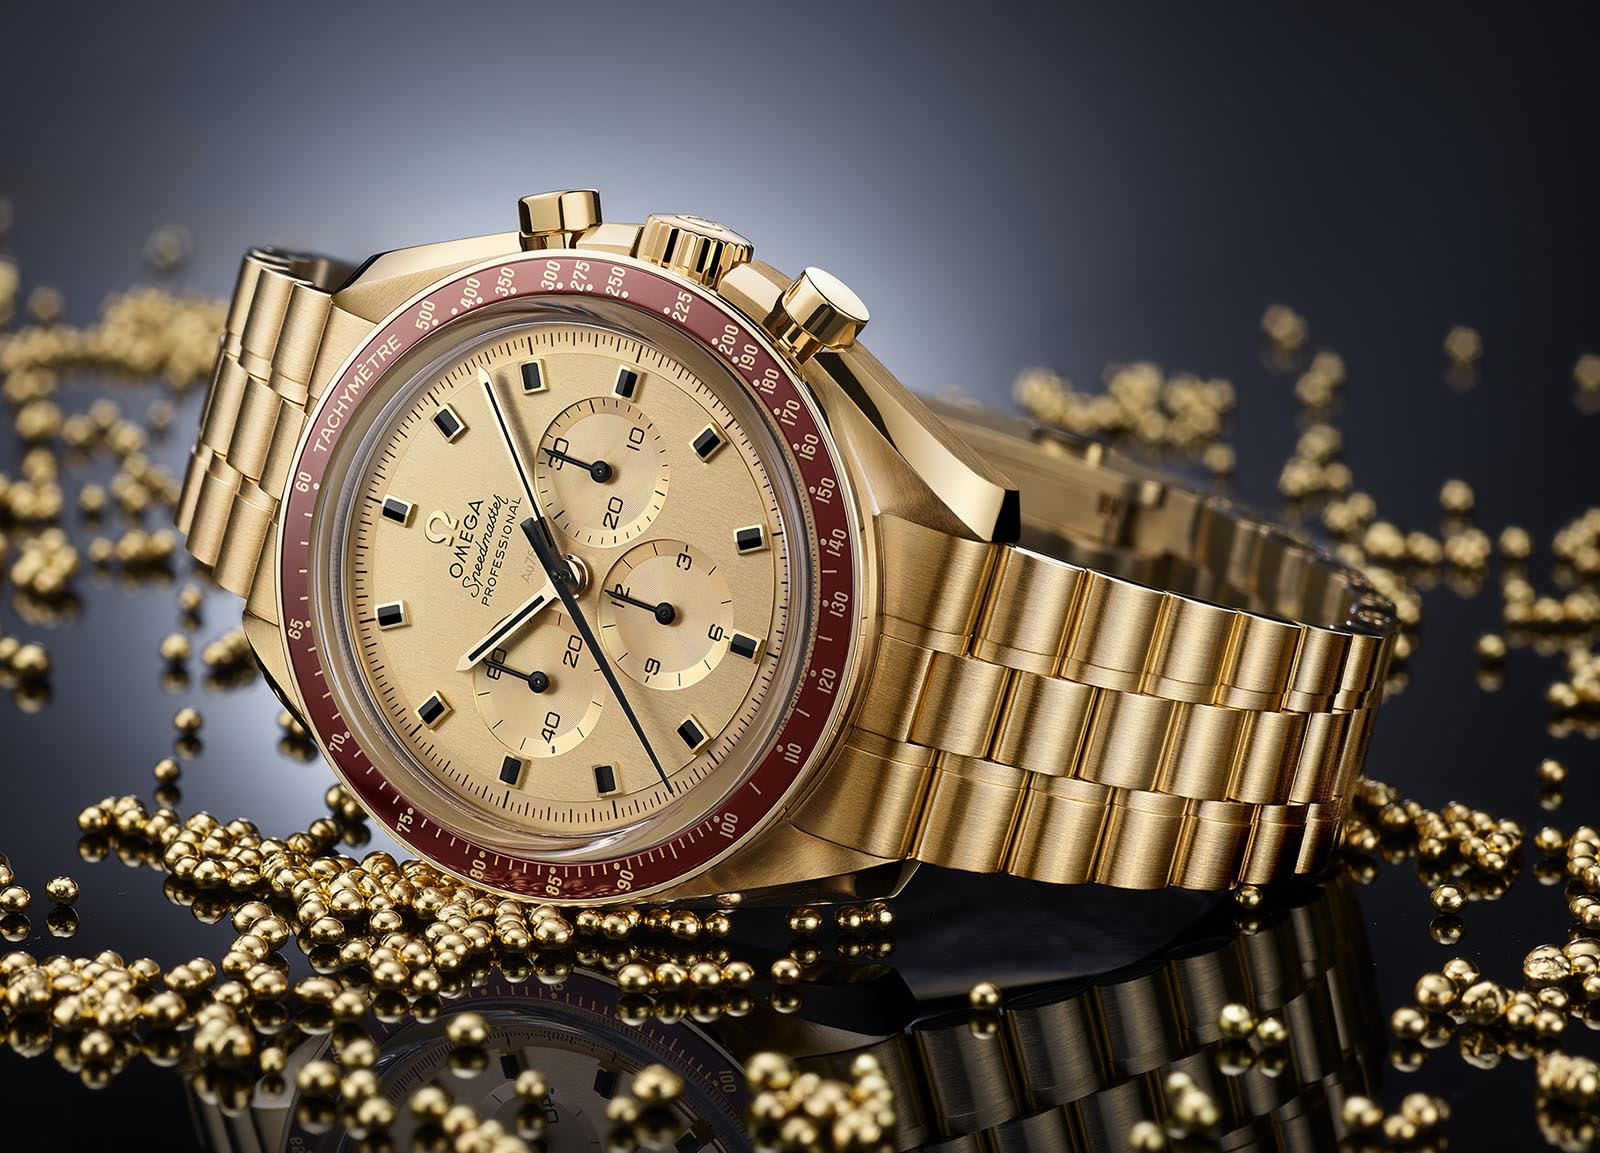 Omega Speedmaster Apollo 11 Anniversary Limited Edition 8